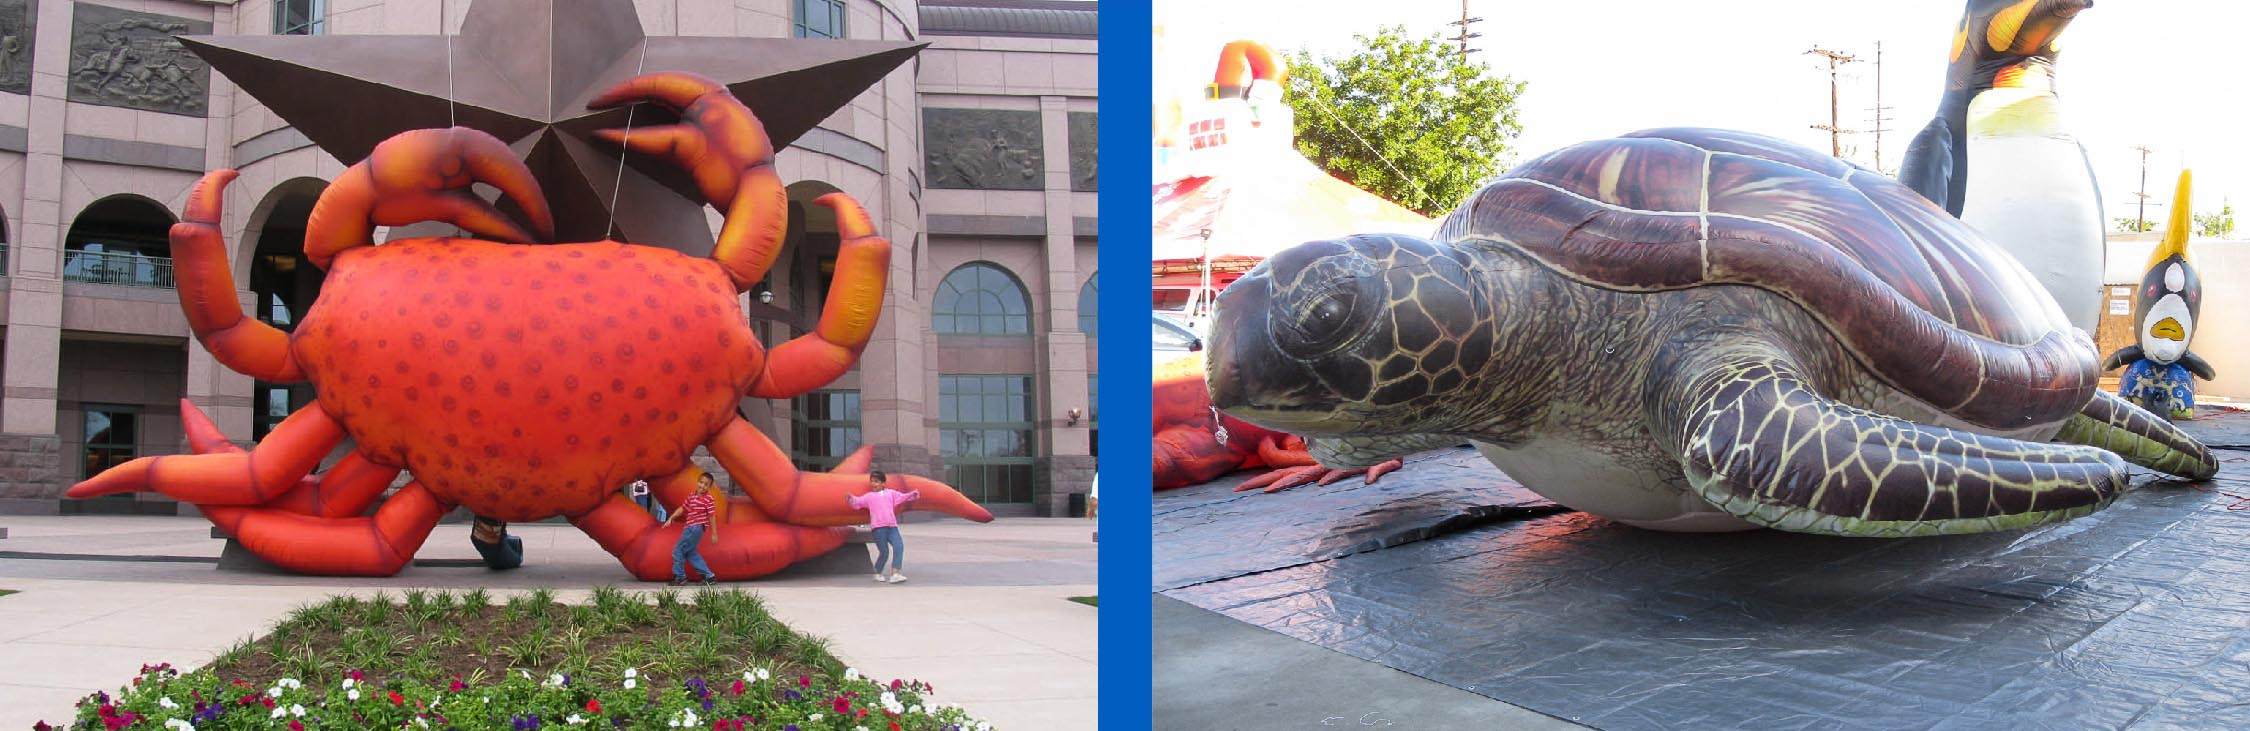 inflatable-crab-and-inflatable-sea-turtle